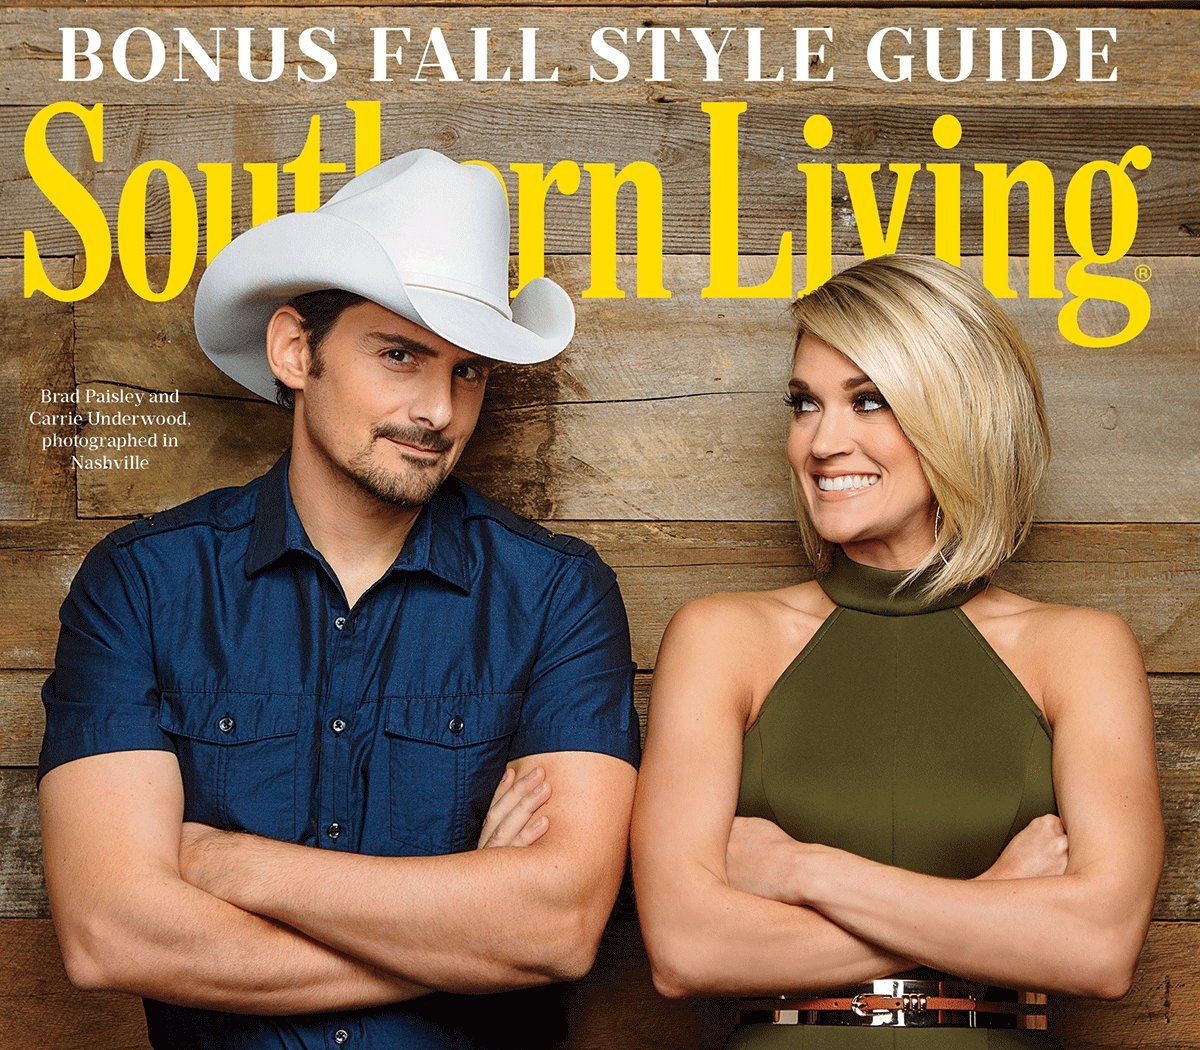 Introducing our September cover stars: @bradpaisley and @carrieunderwood! https://t.co/HT853gS86I https://t.co/IWPE2i0HTs